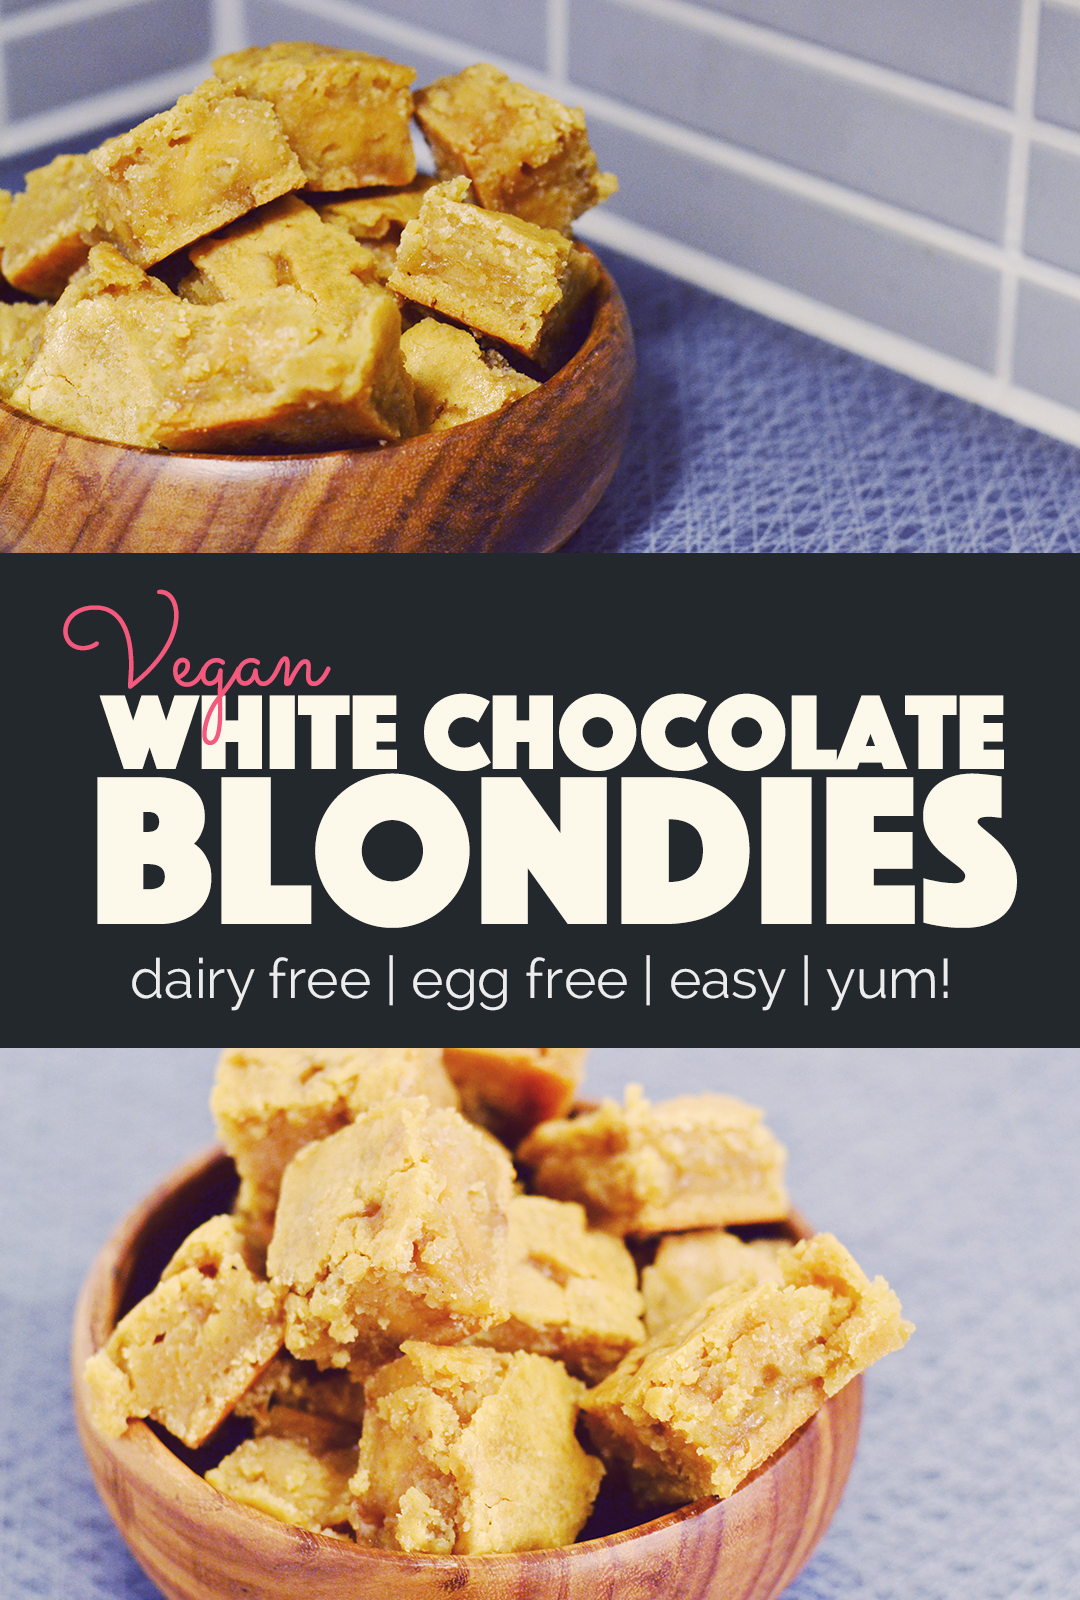 Vegan White Chocolate Blondies | http://BananaBloom.com